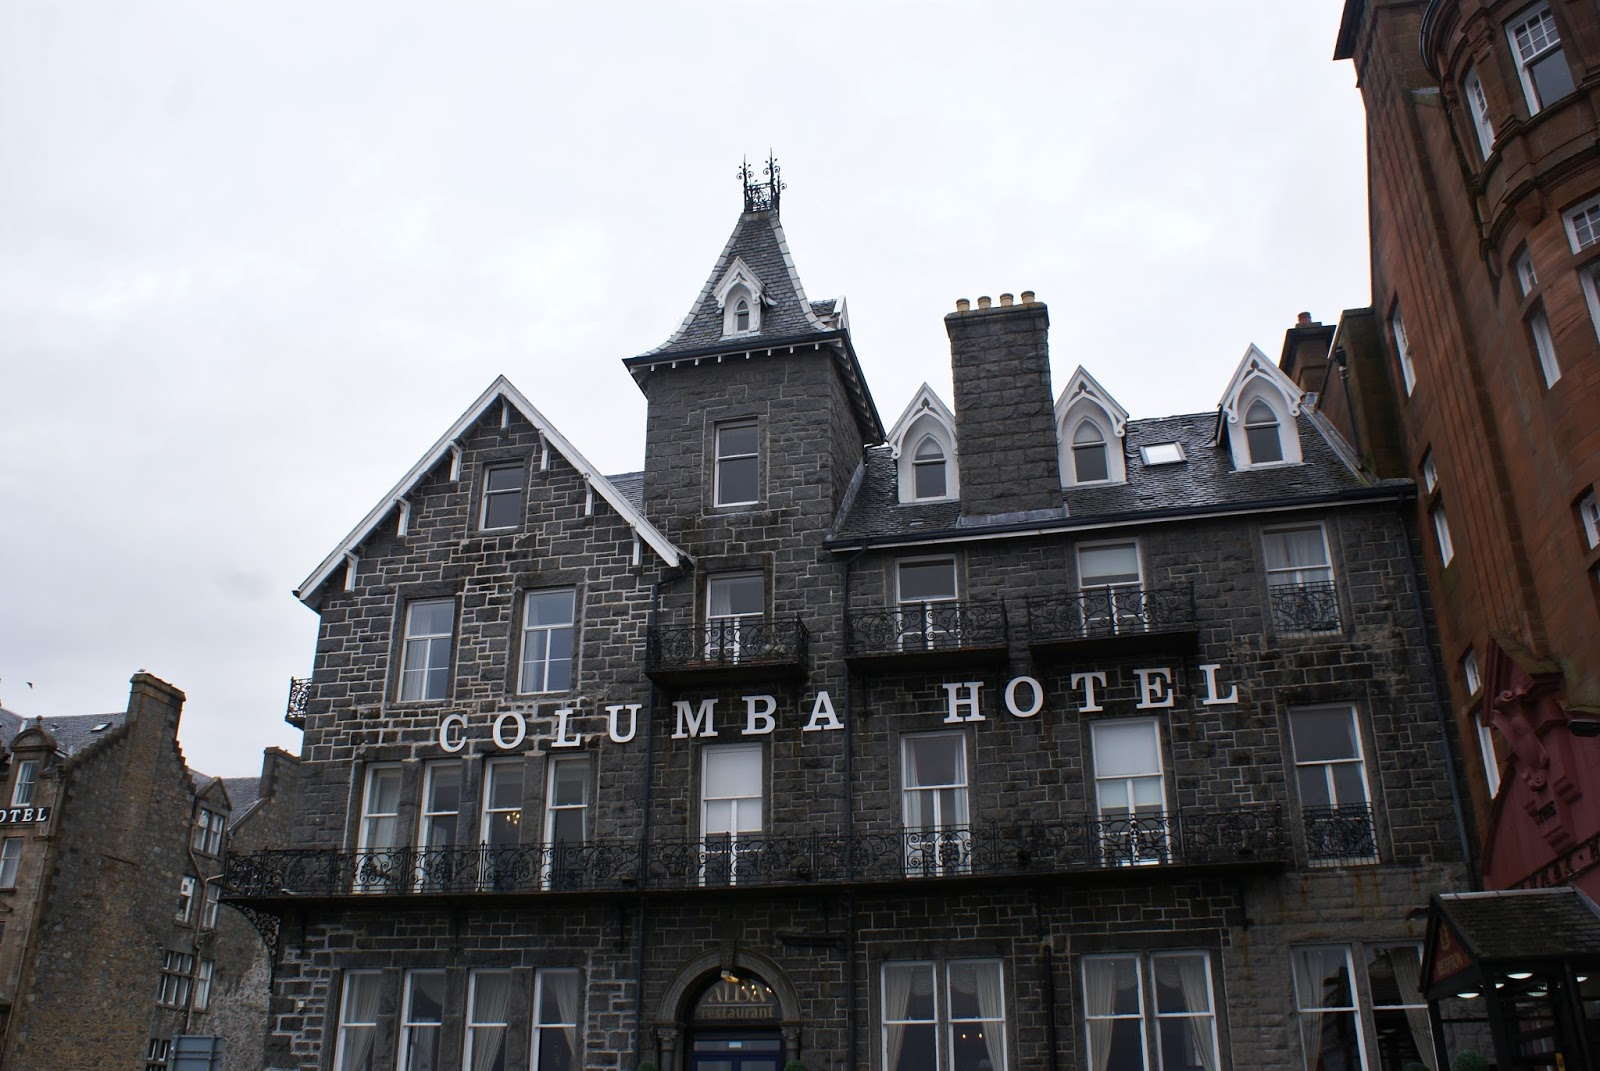 columba hotel oban argyll highlands scotland uk great britain camomille blend